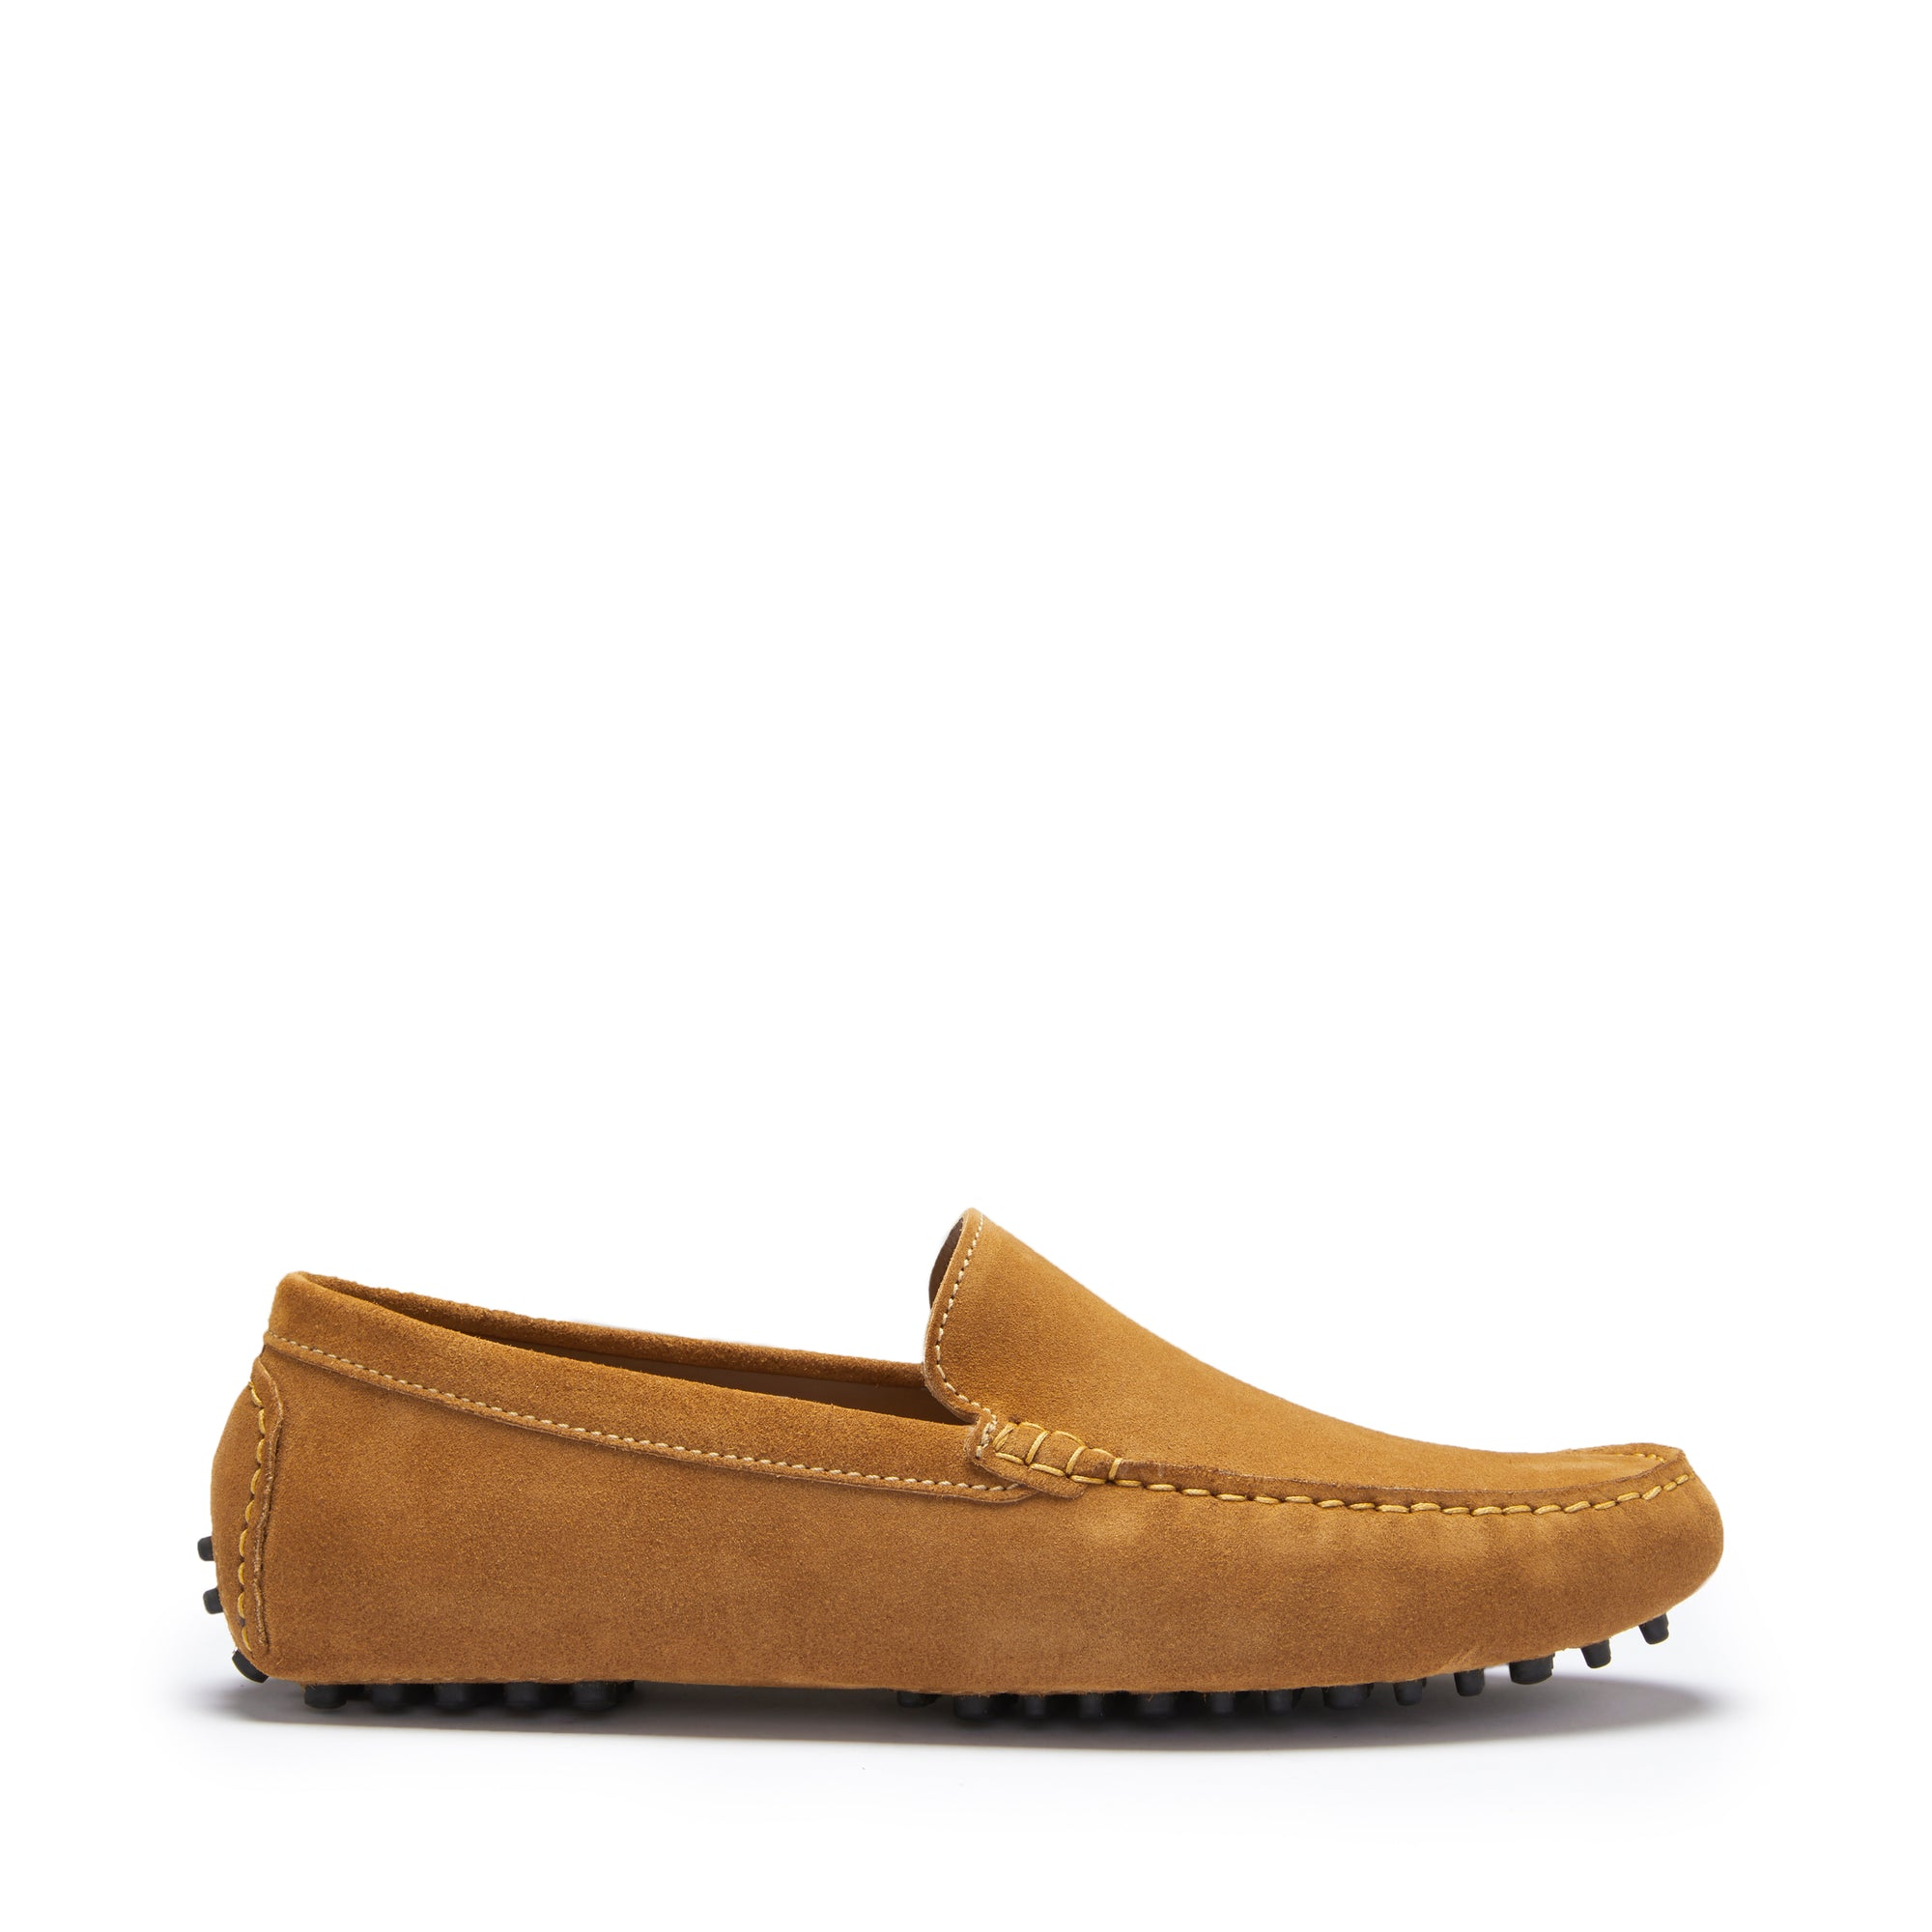 Driving Loafers, tobacco suede